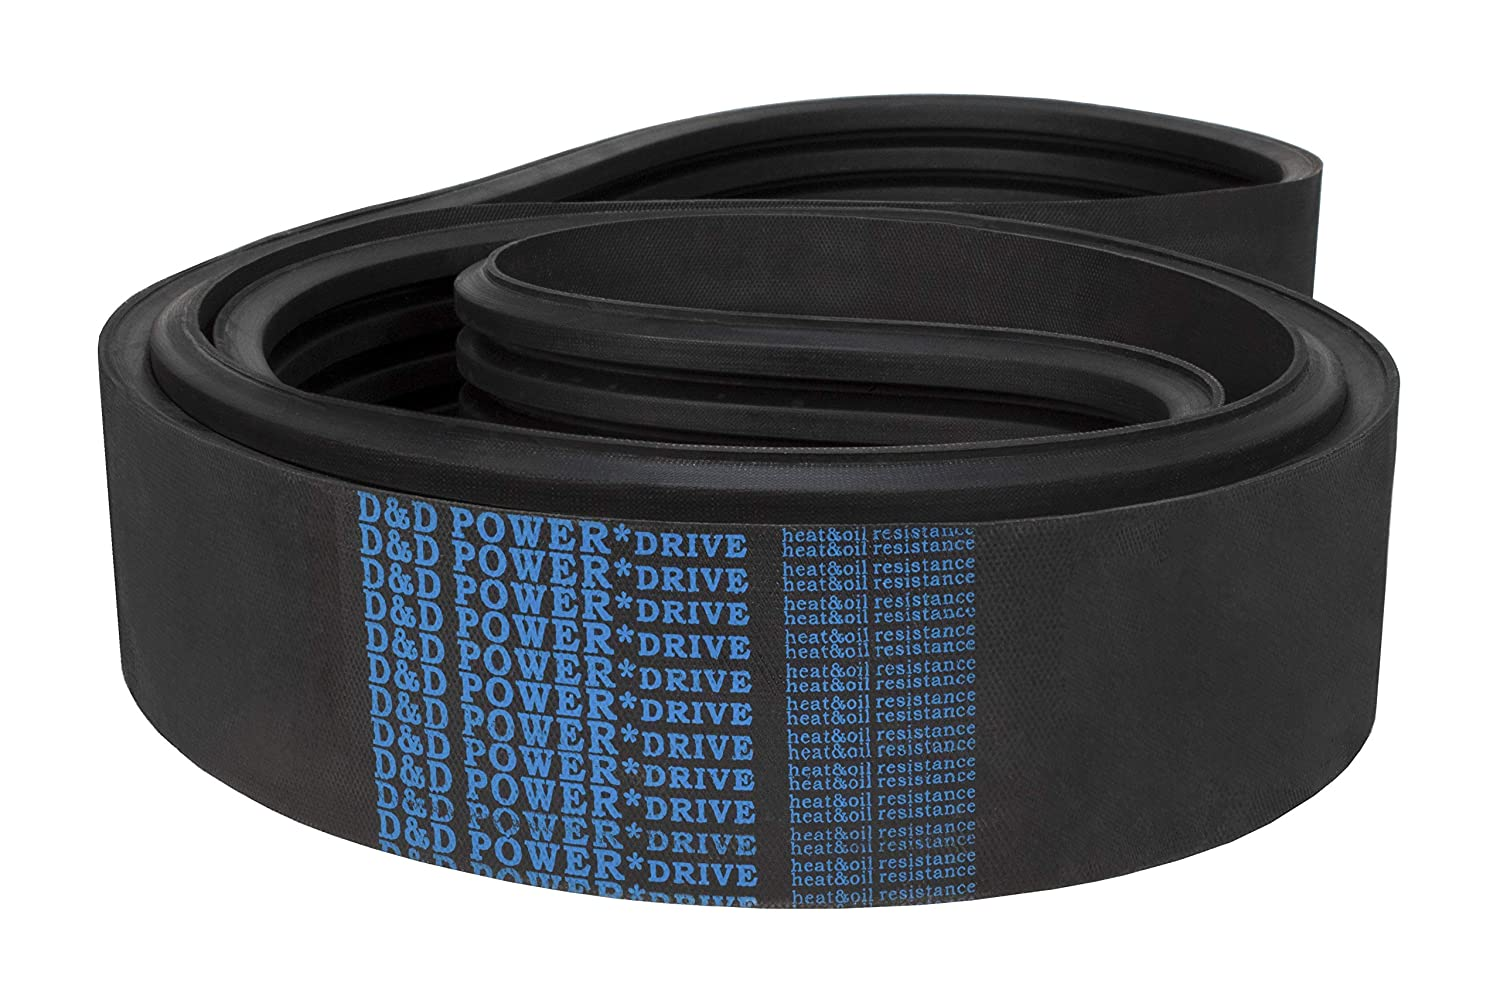 D&D PowerDrive ORB-19-171558V1000/03 Banded V Belt, 100